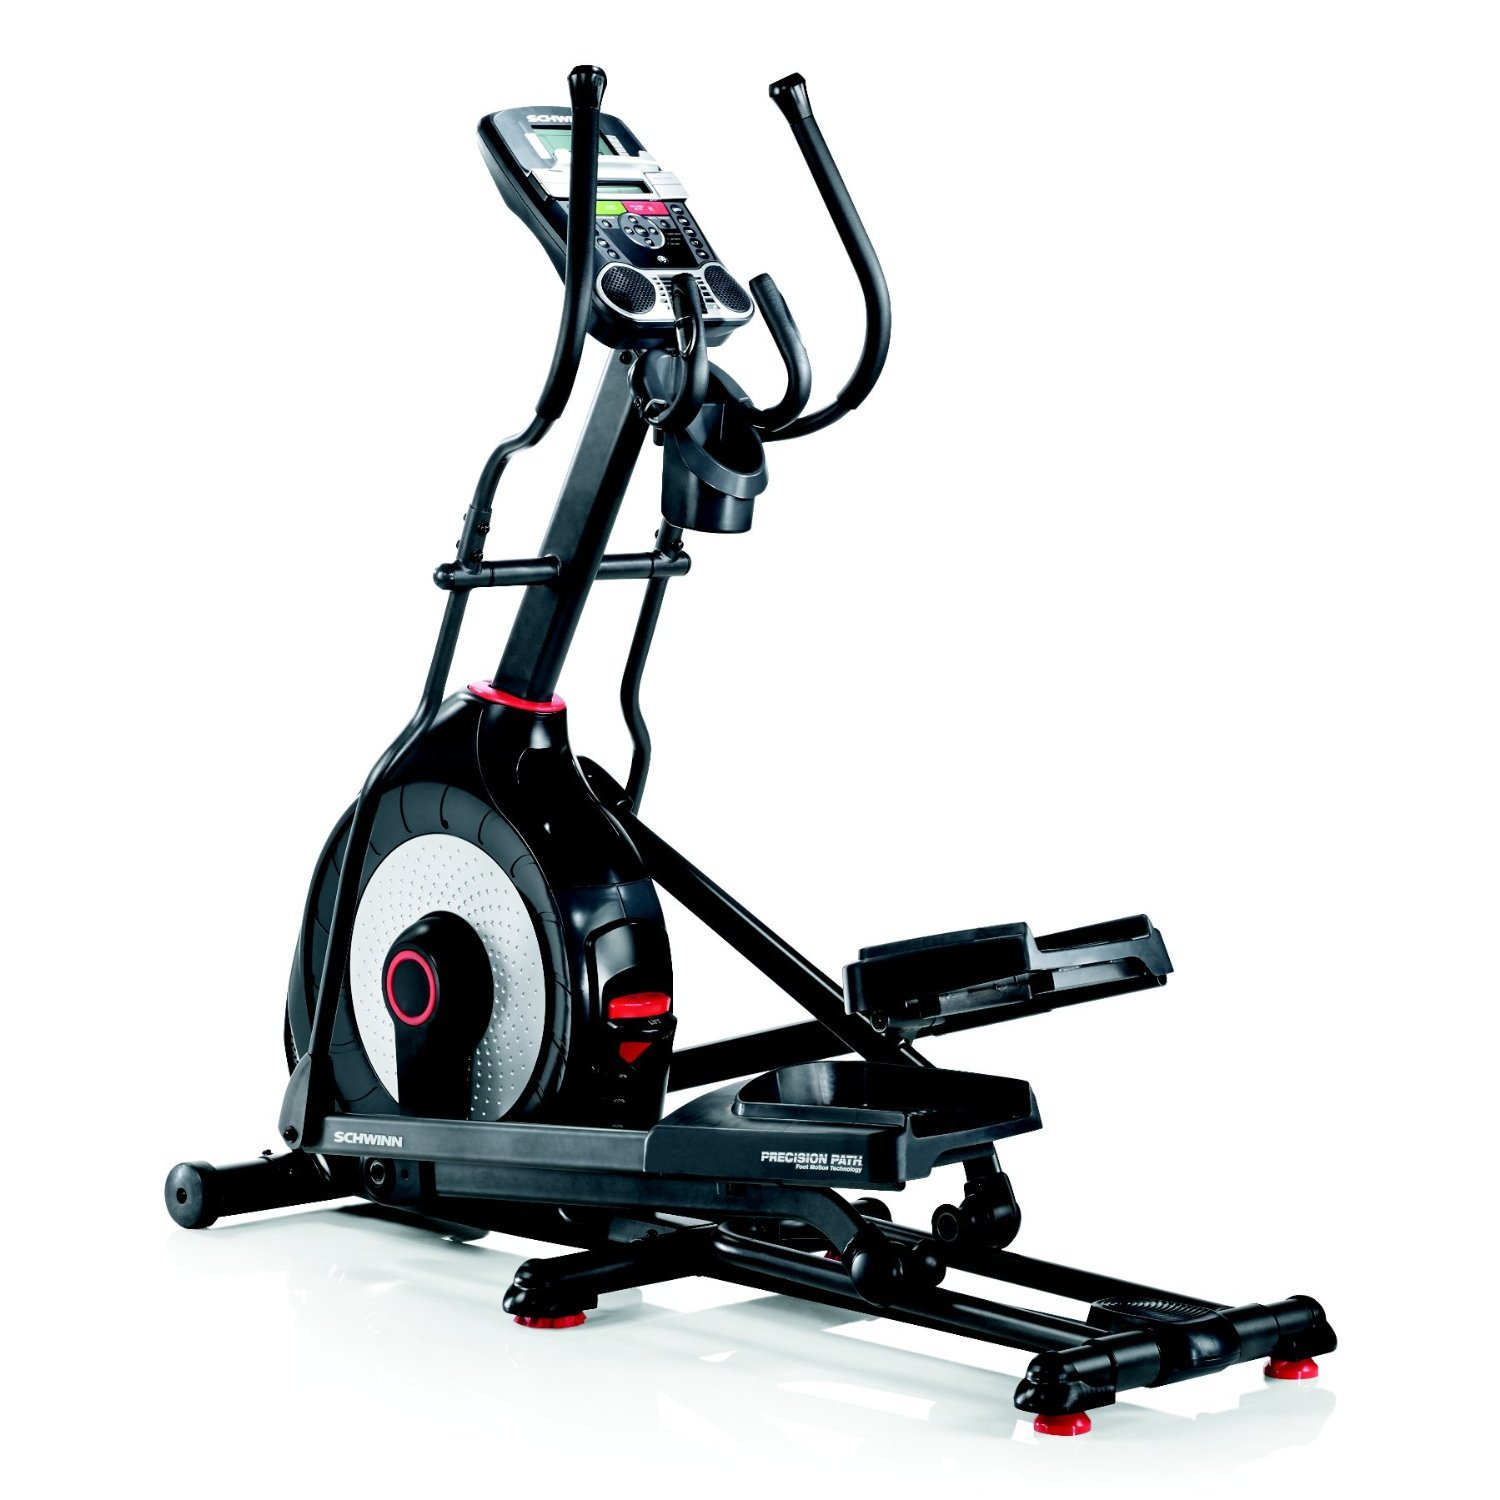 Schwinn 430 elliptical pictured here is under $1000